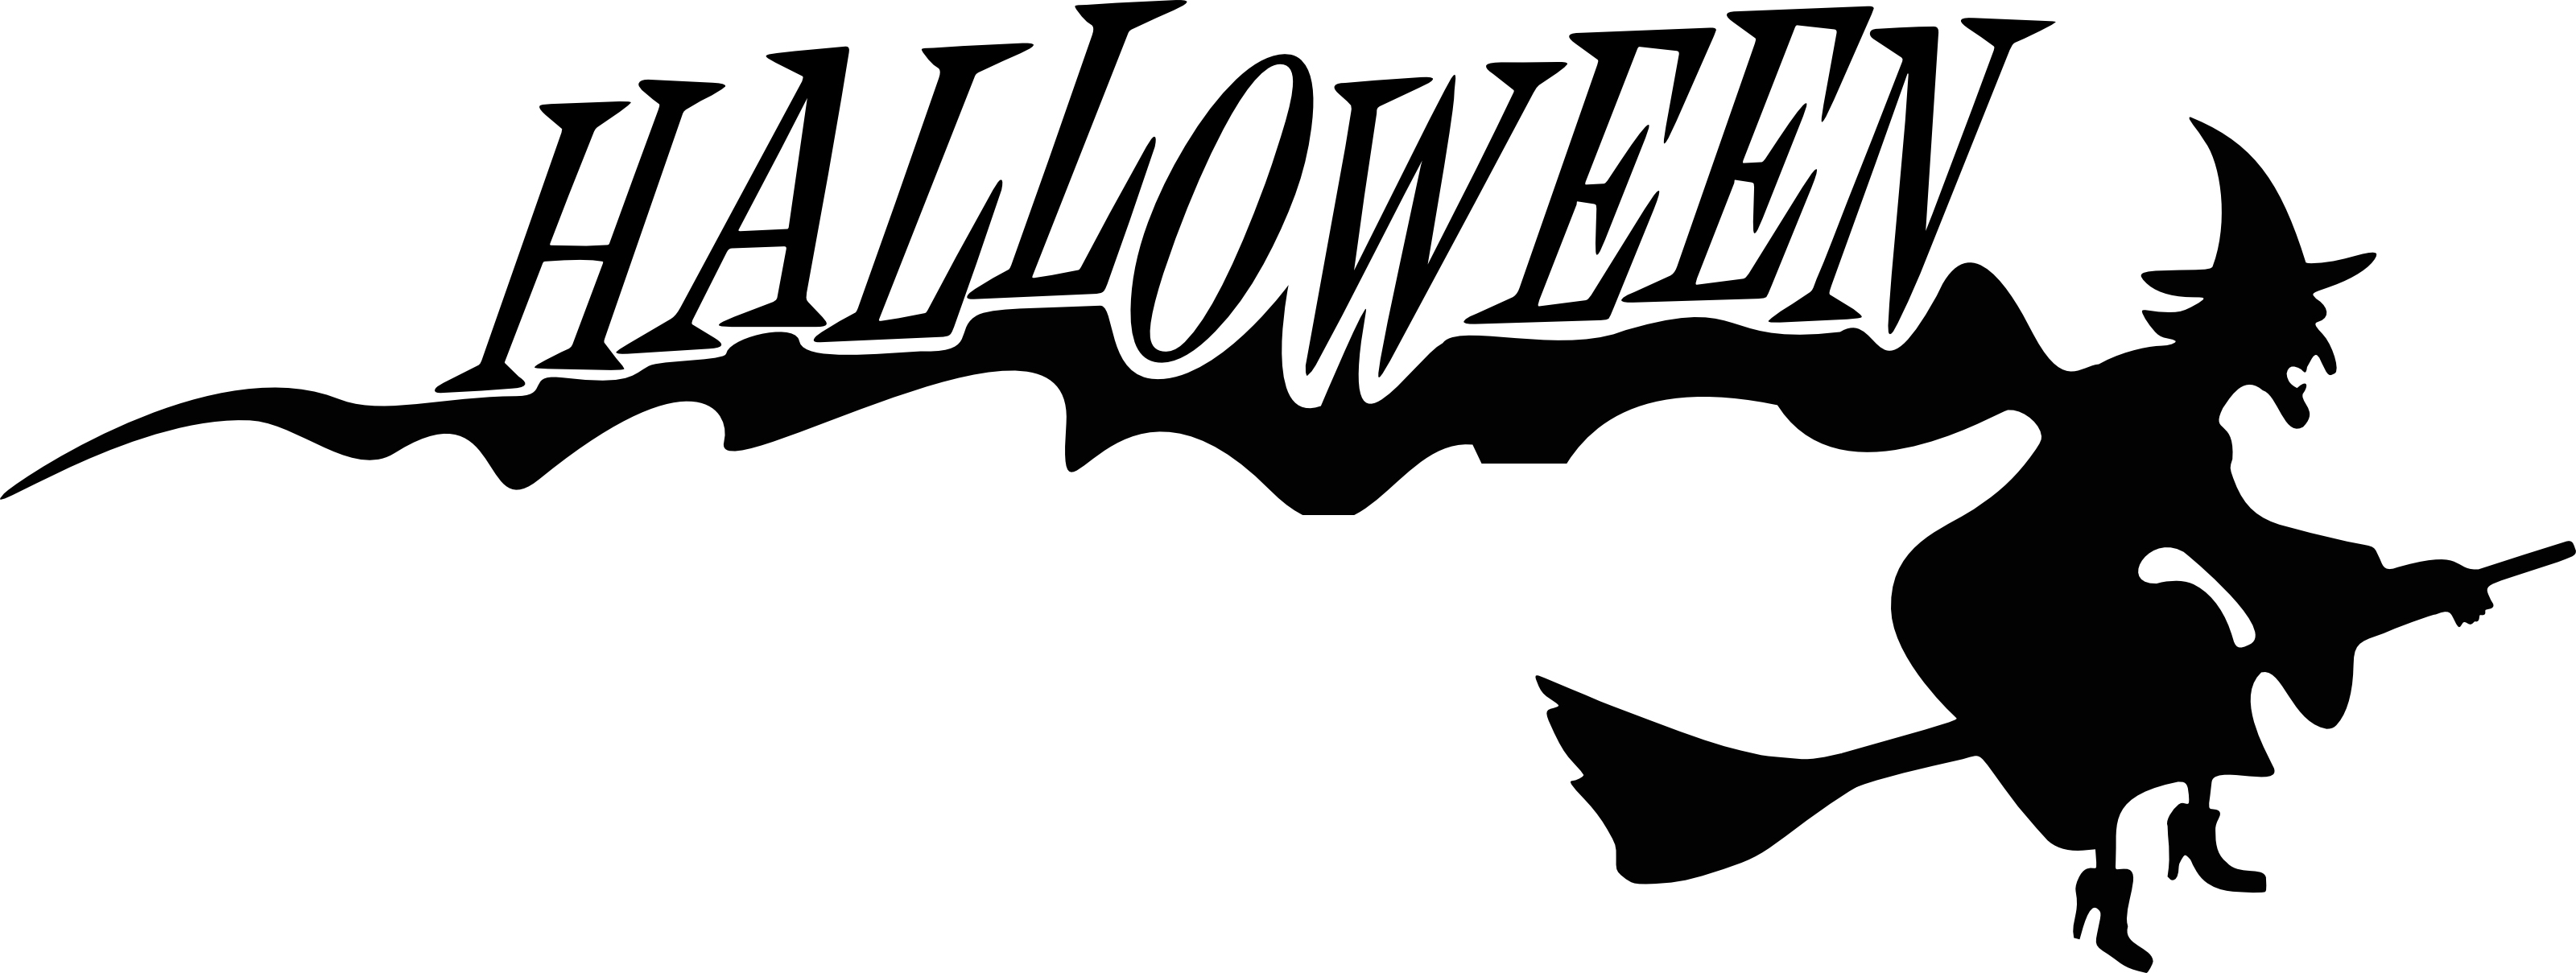 Halloween Picture Backgrounds Png - Halloween Background Png Transparent Hd #26465 - Free Icons and ...